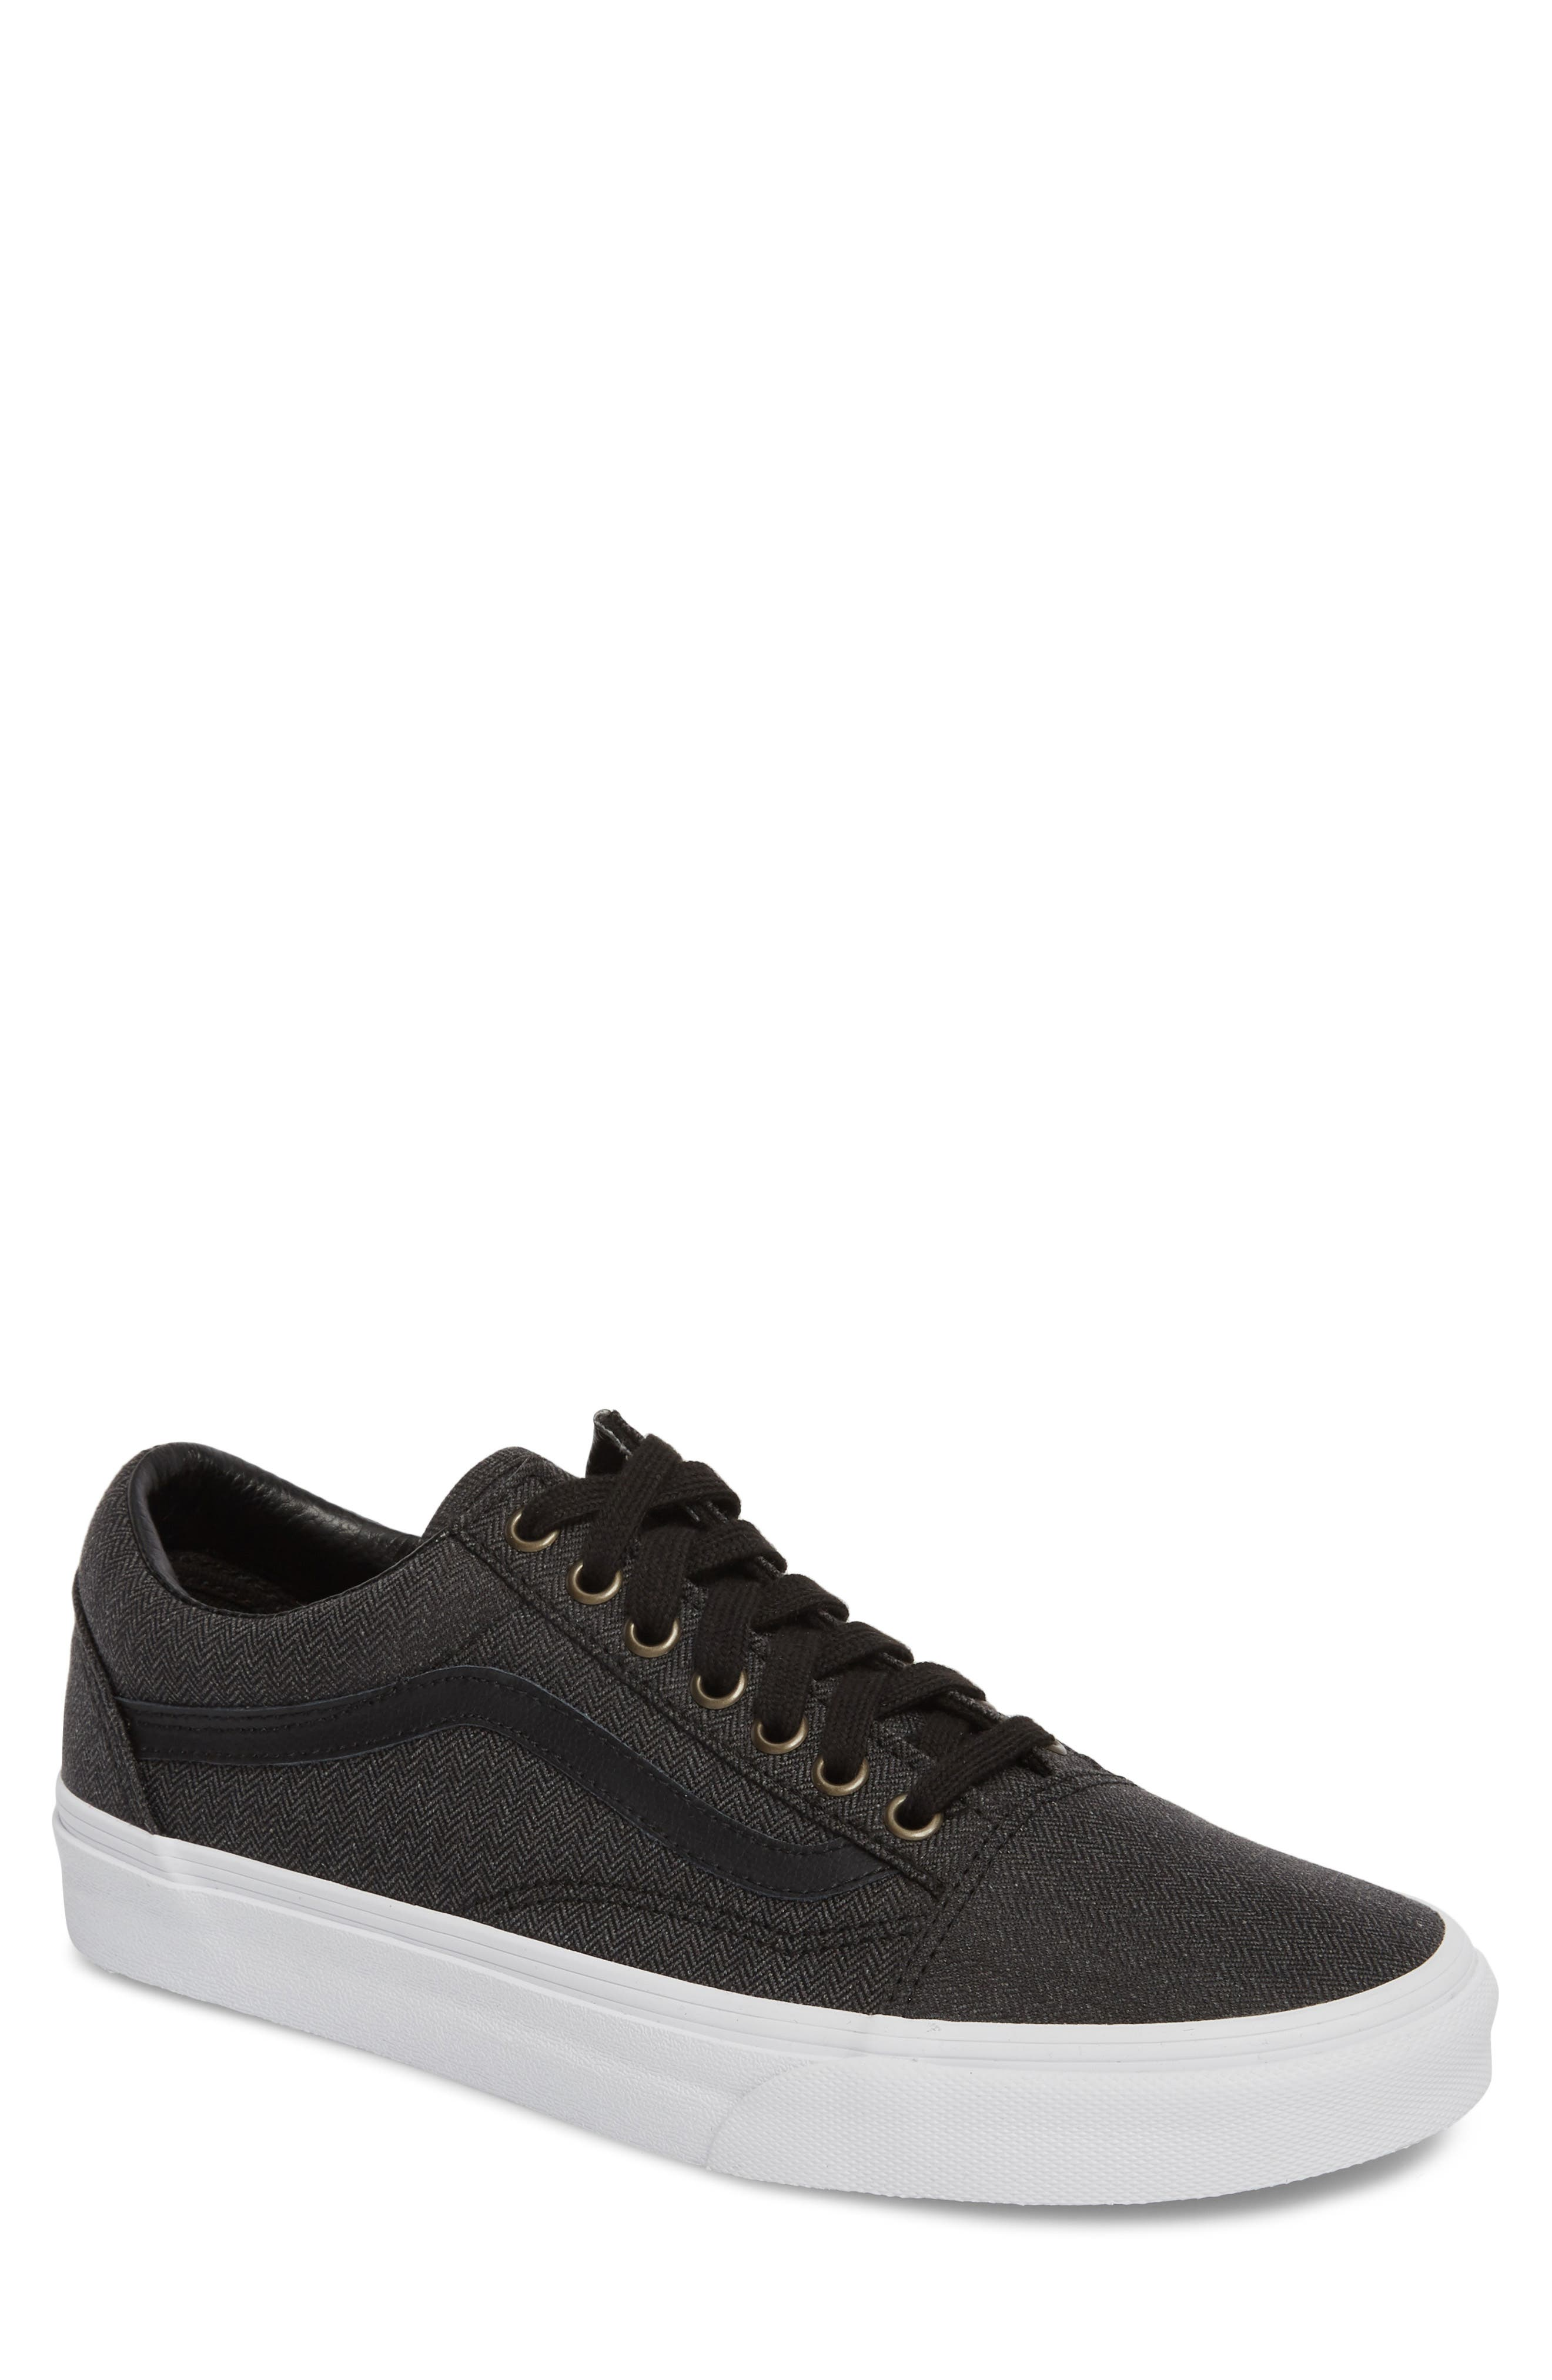 vans old skool black nordstrom